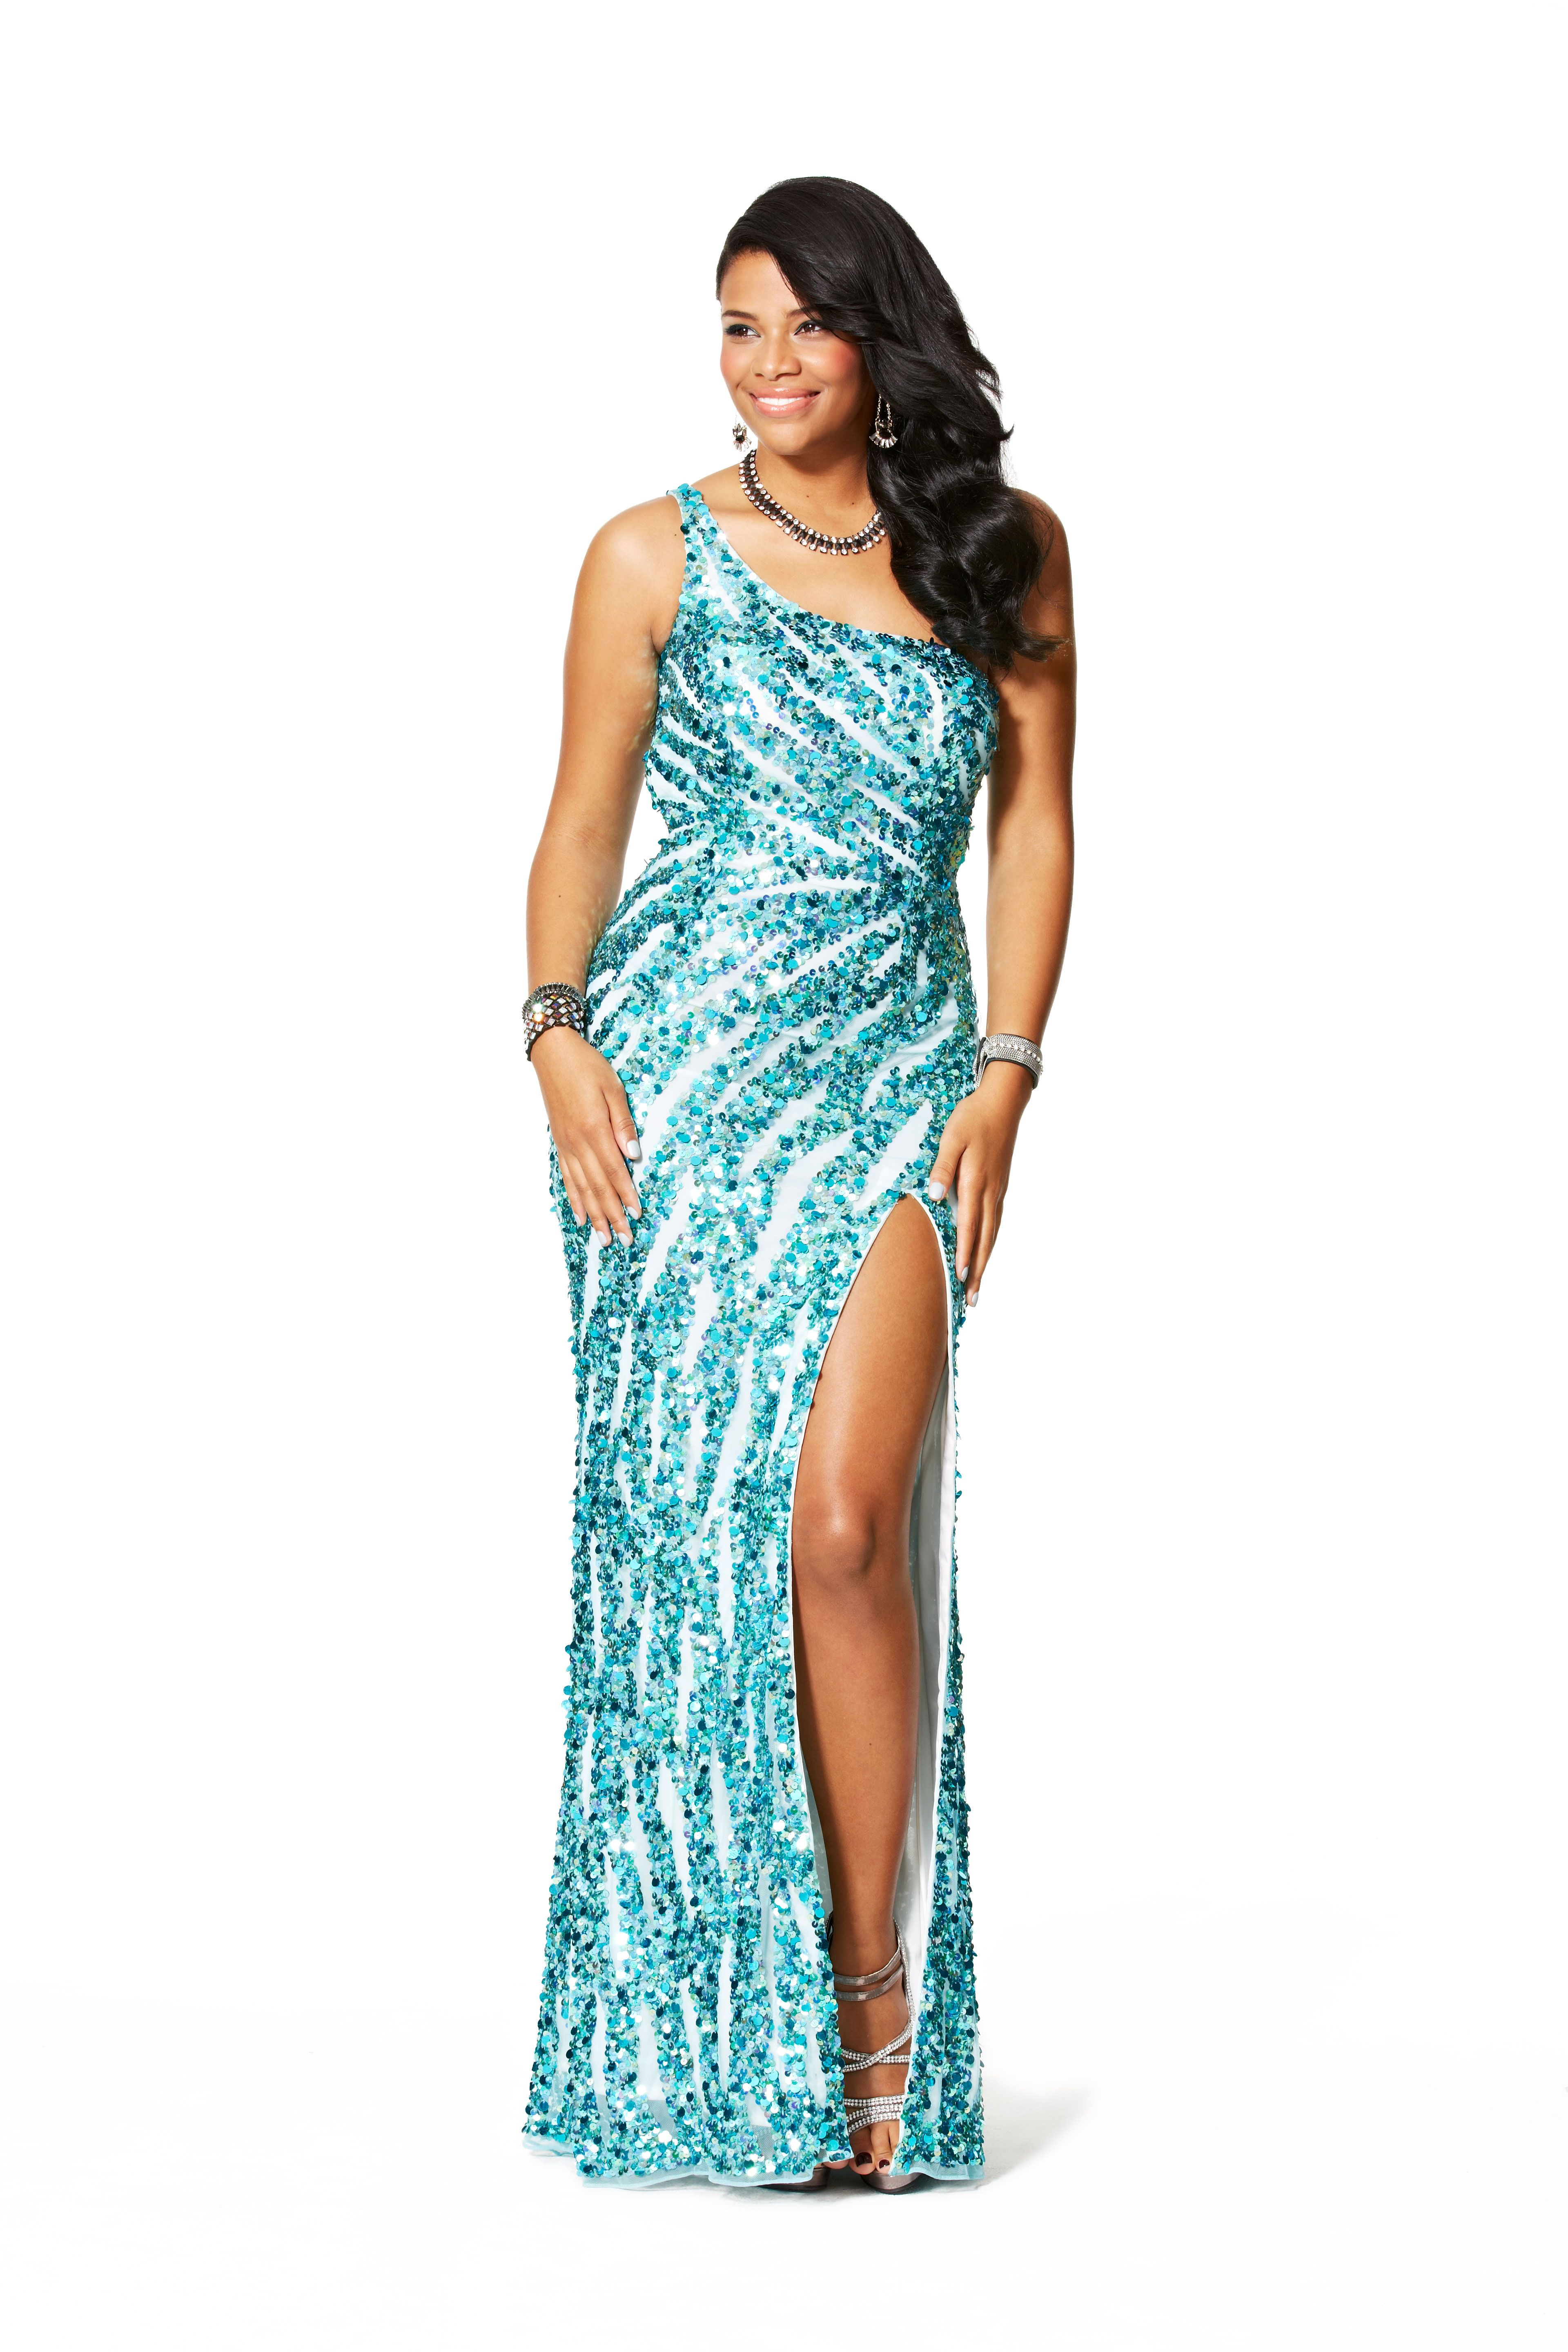 The Best Prom Dresses For Your Body Type - How To Choose A Prom ...